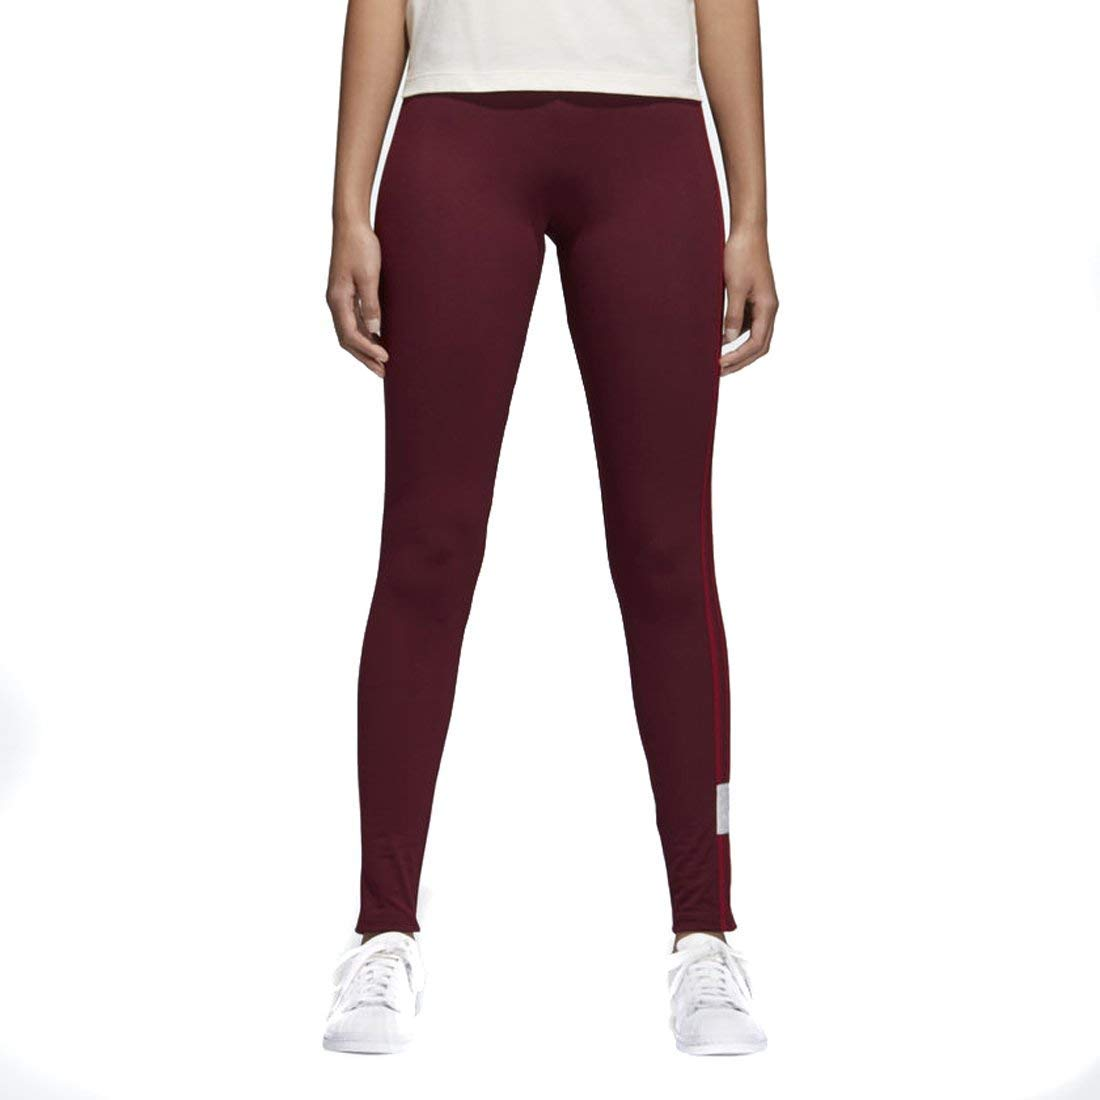 Adidas Originals Adibreak Leggings Adidas Women's Women's dCthxBsQr